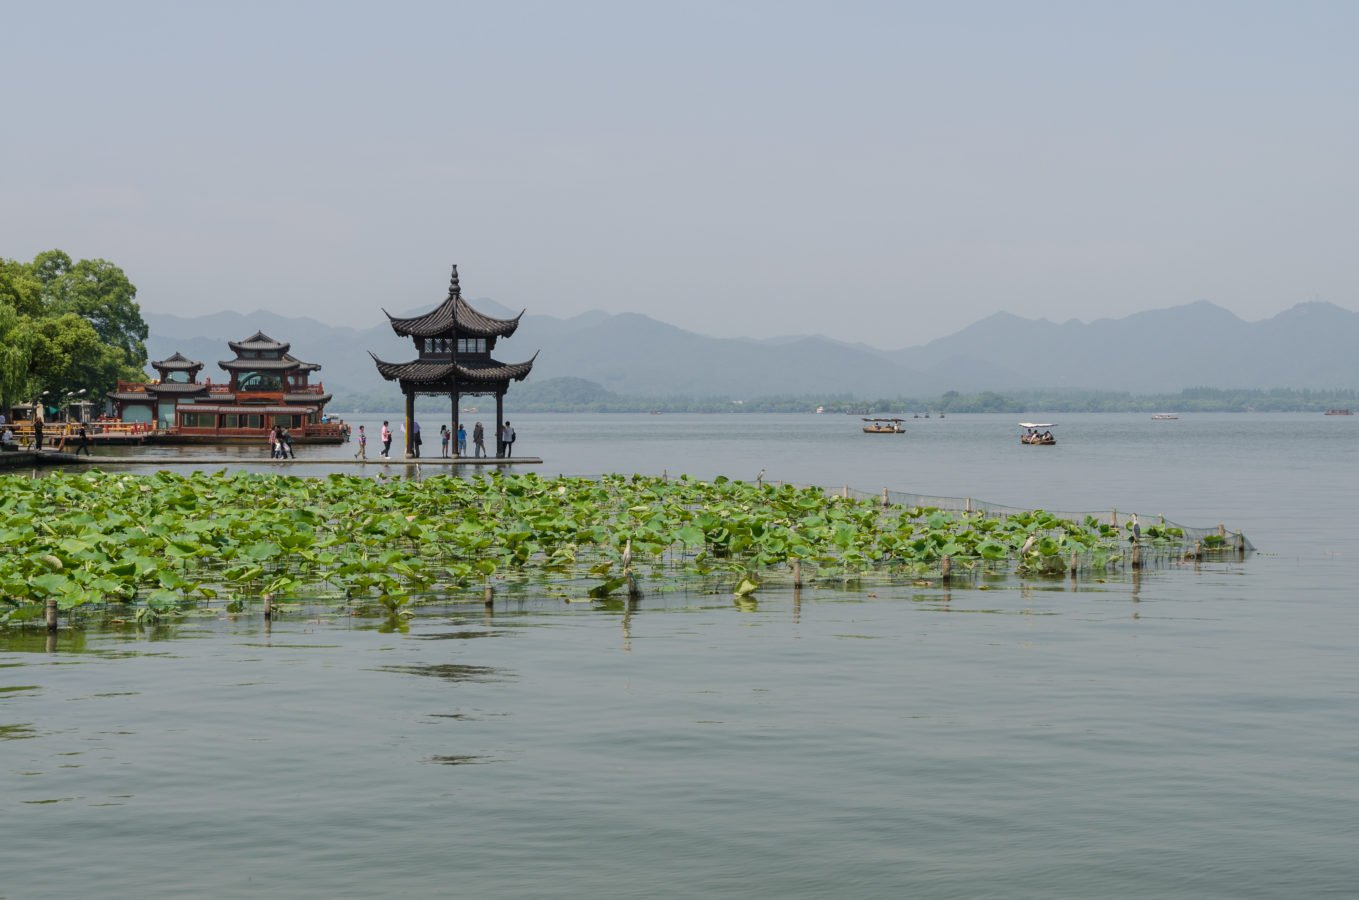 West Lake Pavilion and Water Lilies, Hangzhou